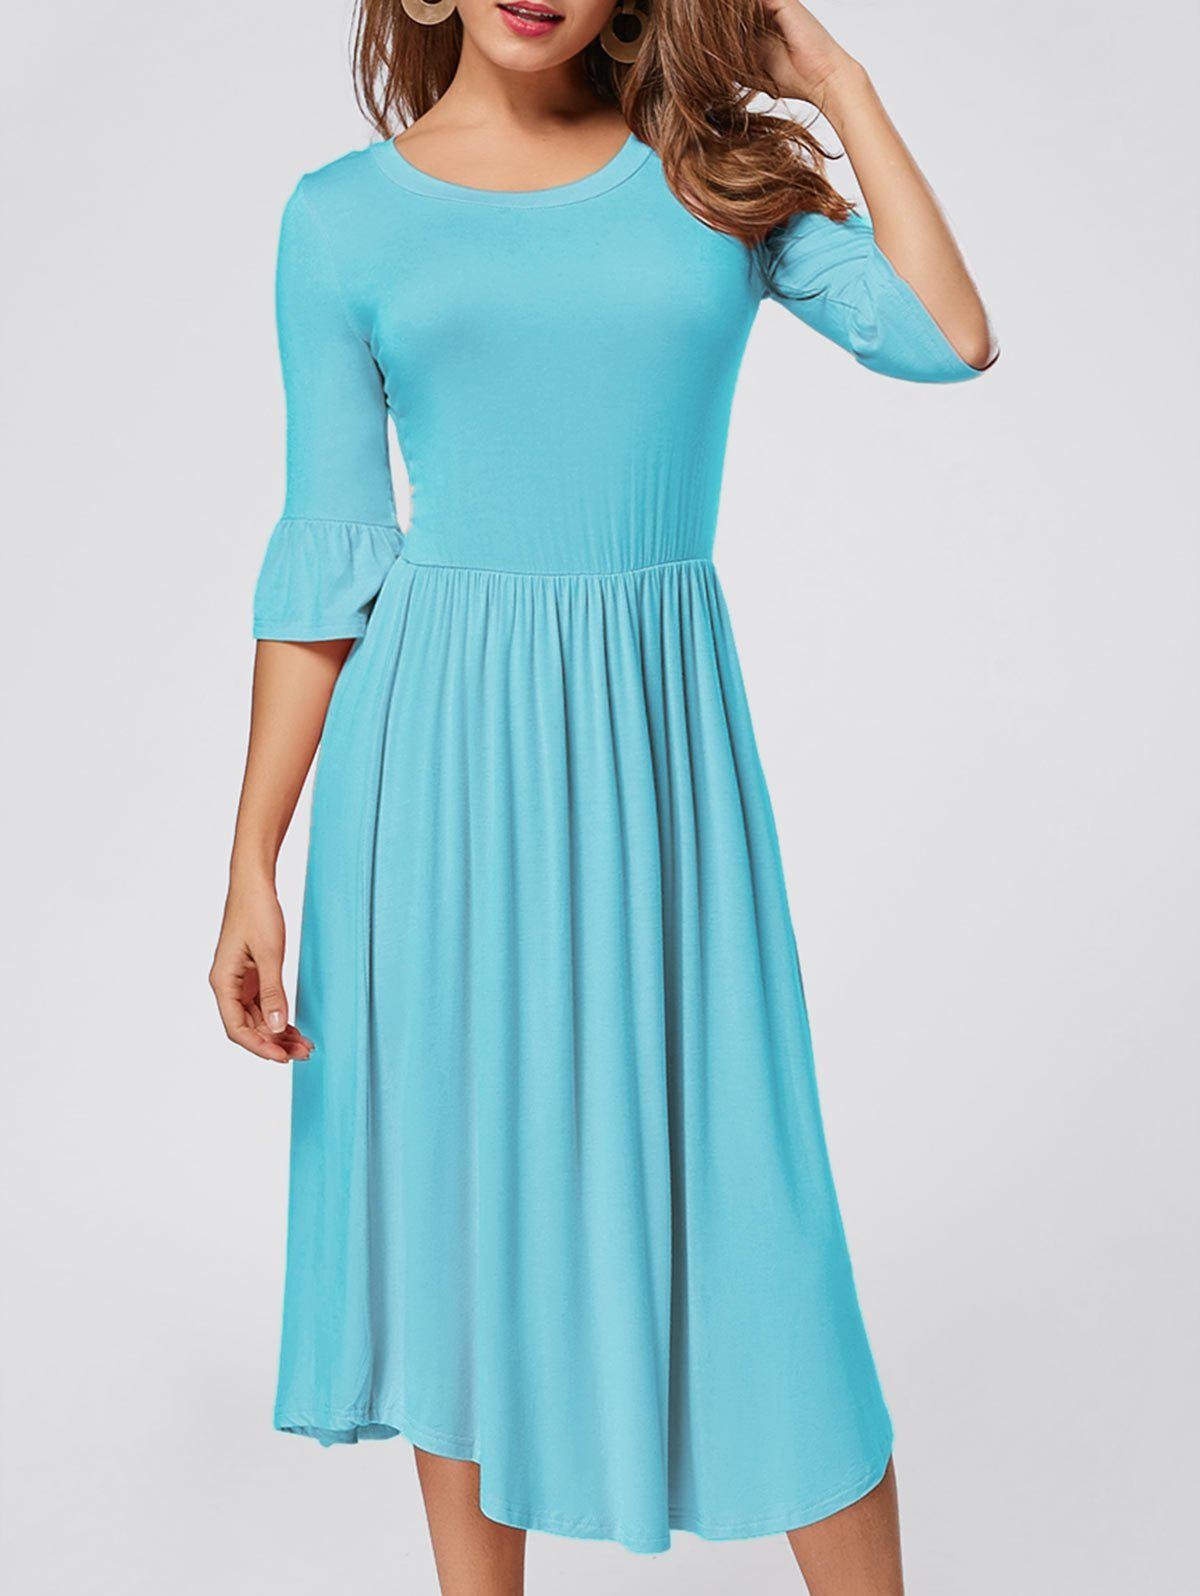 Ruffle Sleeve Midi Jersey Dress - BLUE S